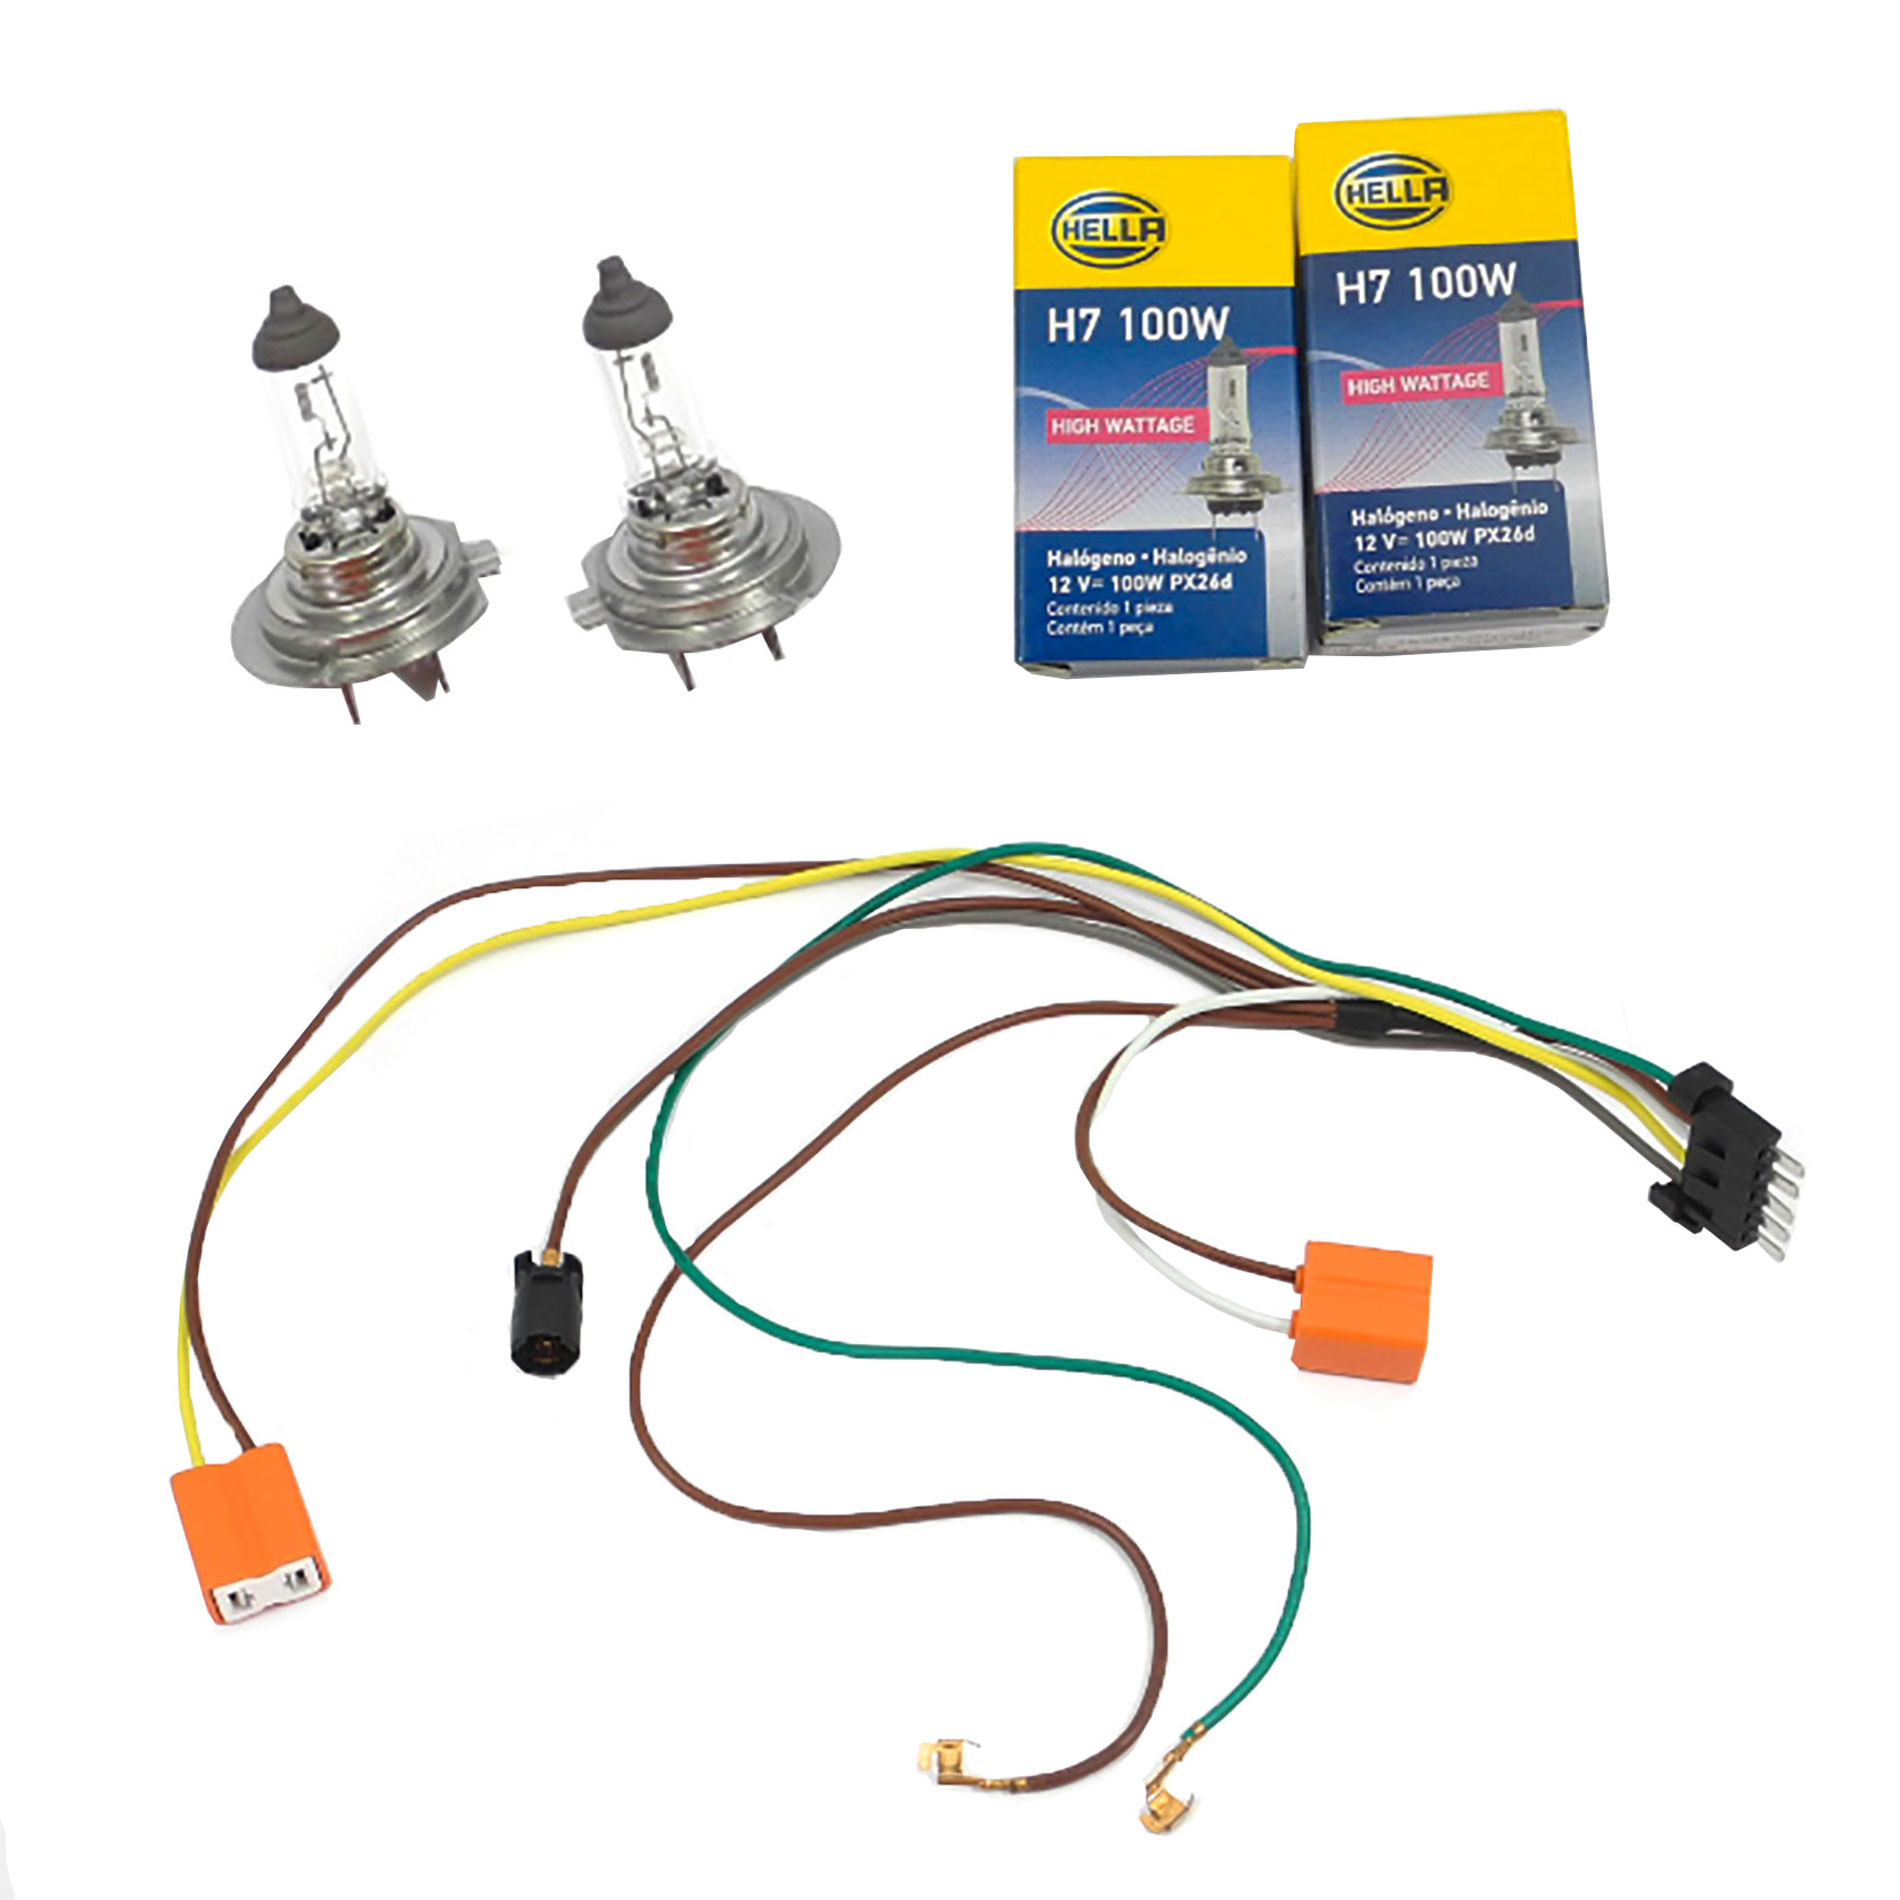 Right Headlight Wiring Harness /& H7 100W Headlight Bulb For Benz S55 S600 Left